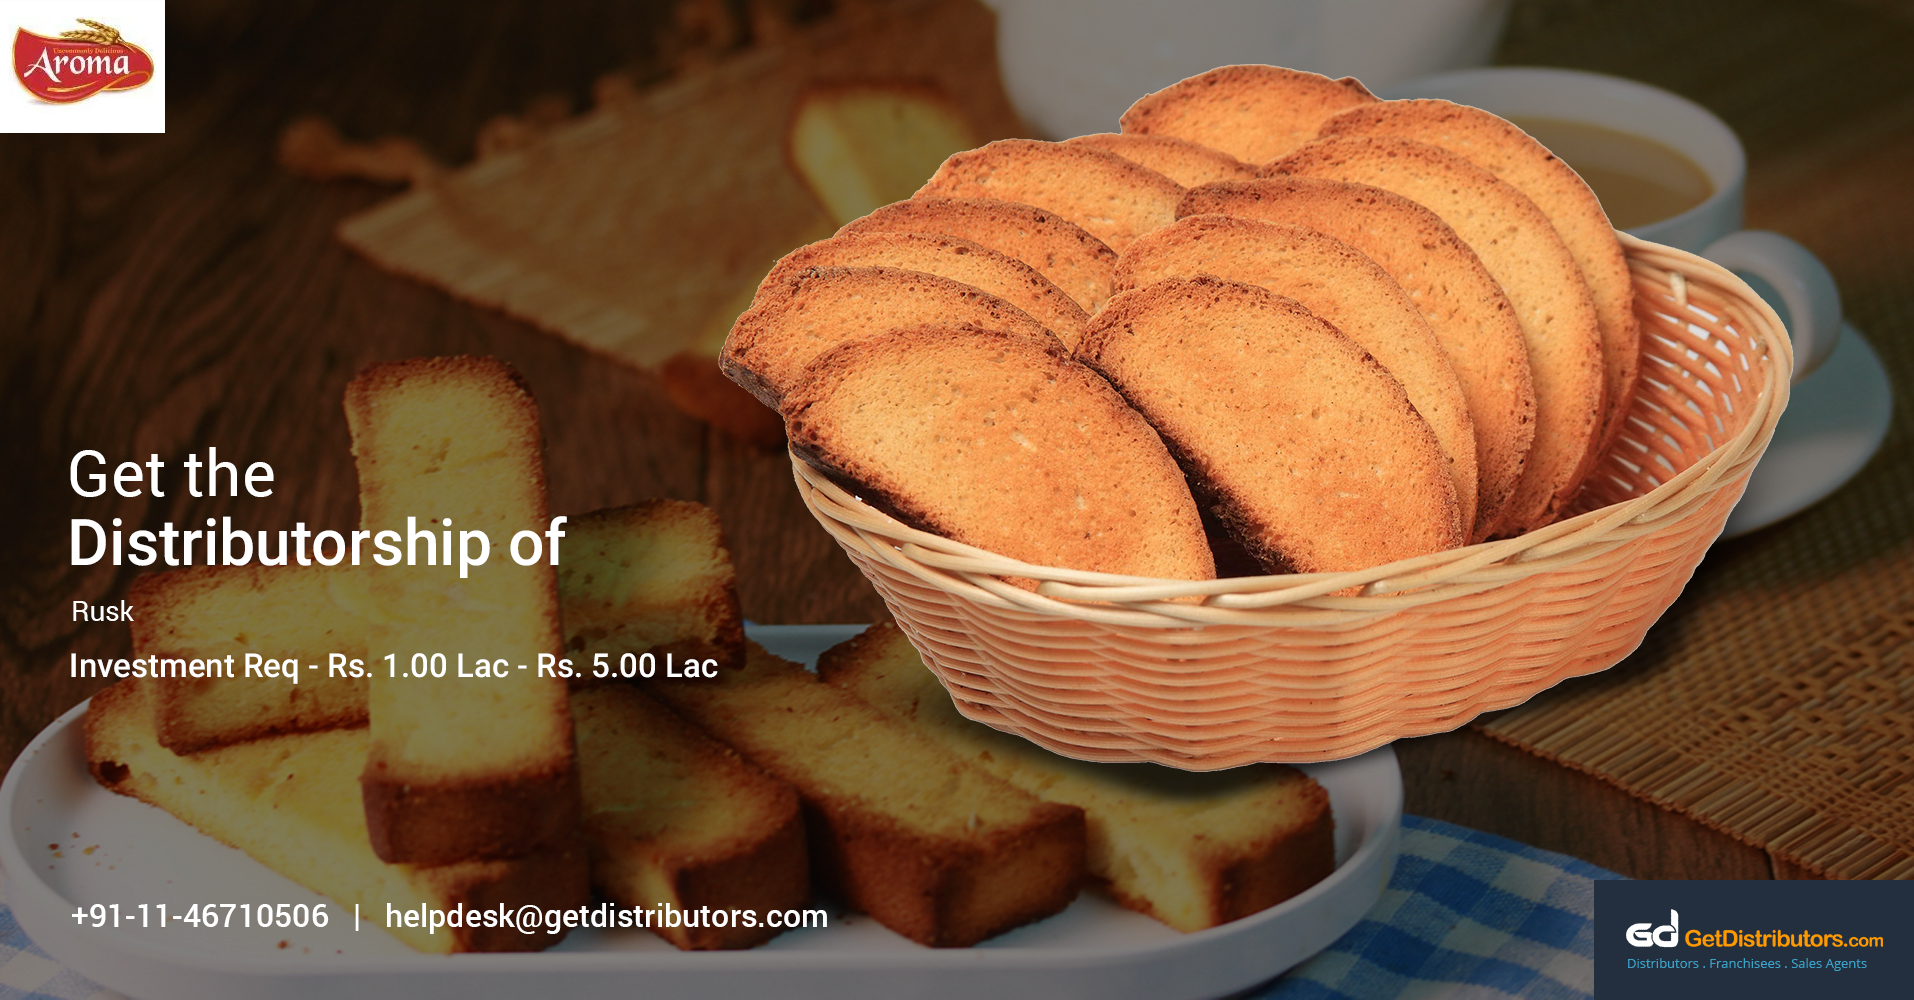 Flavored And Delicious Rusks Distributorship At Reasonable Prices